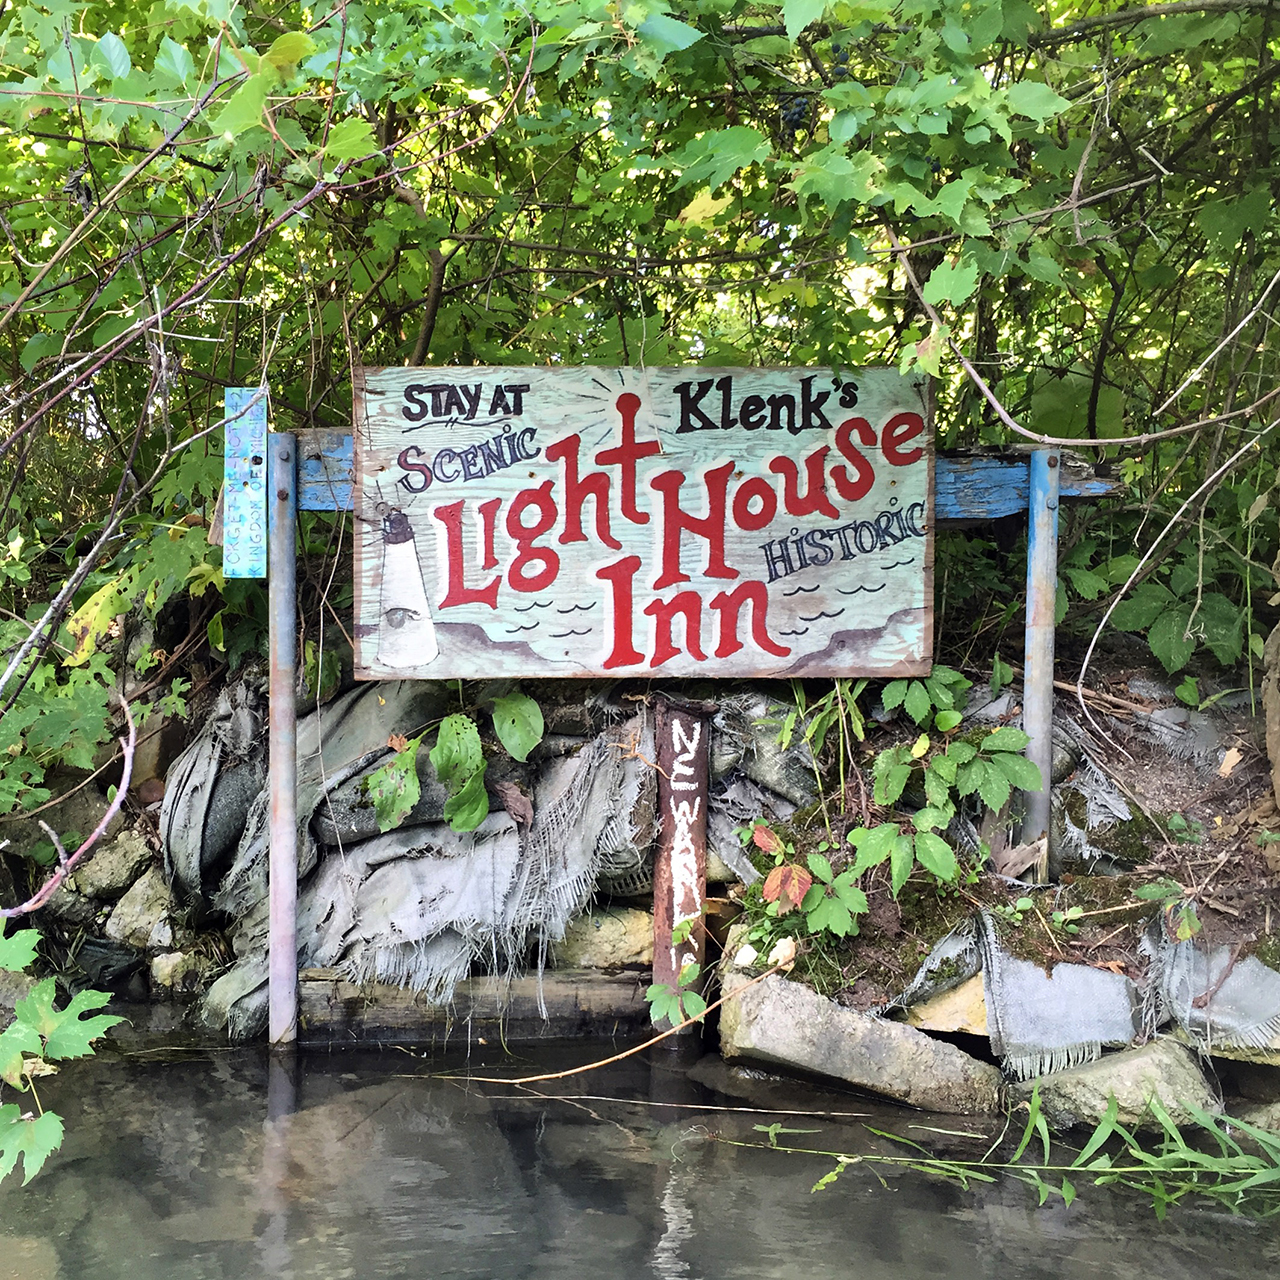 One of the signs, only visible from the water. Photo courtesy of Scott Hocking.